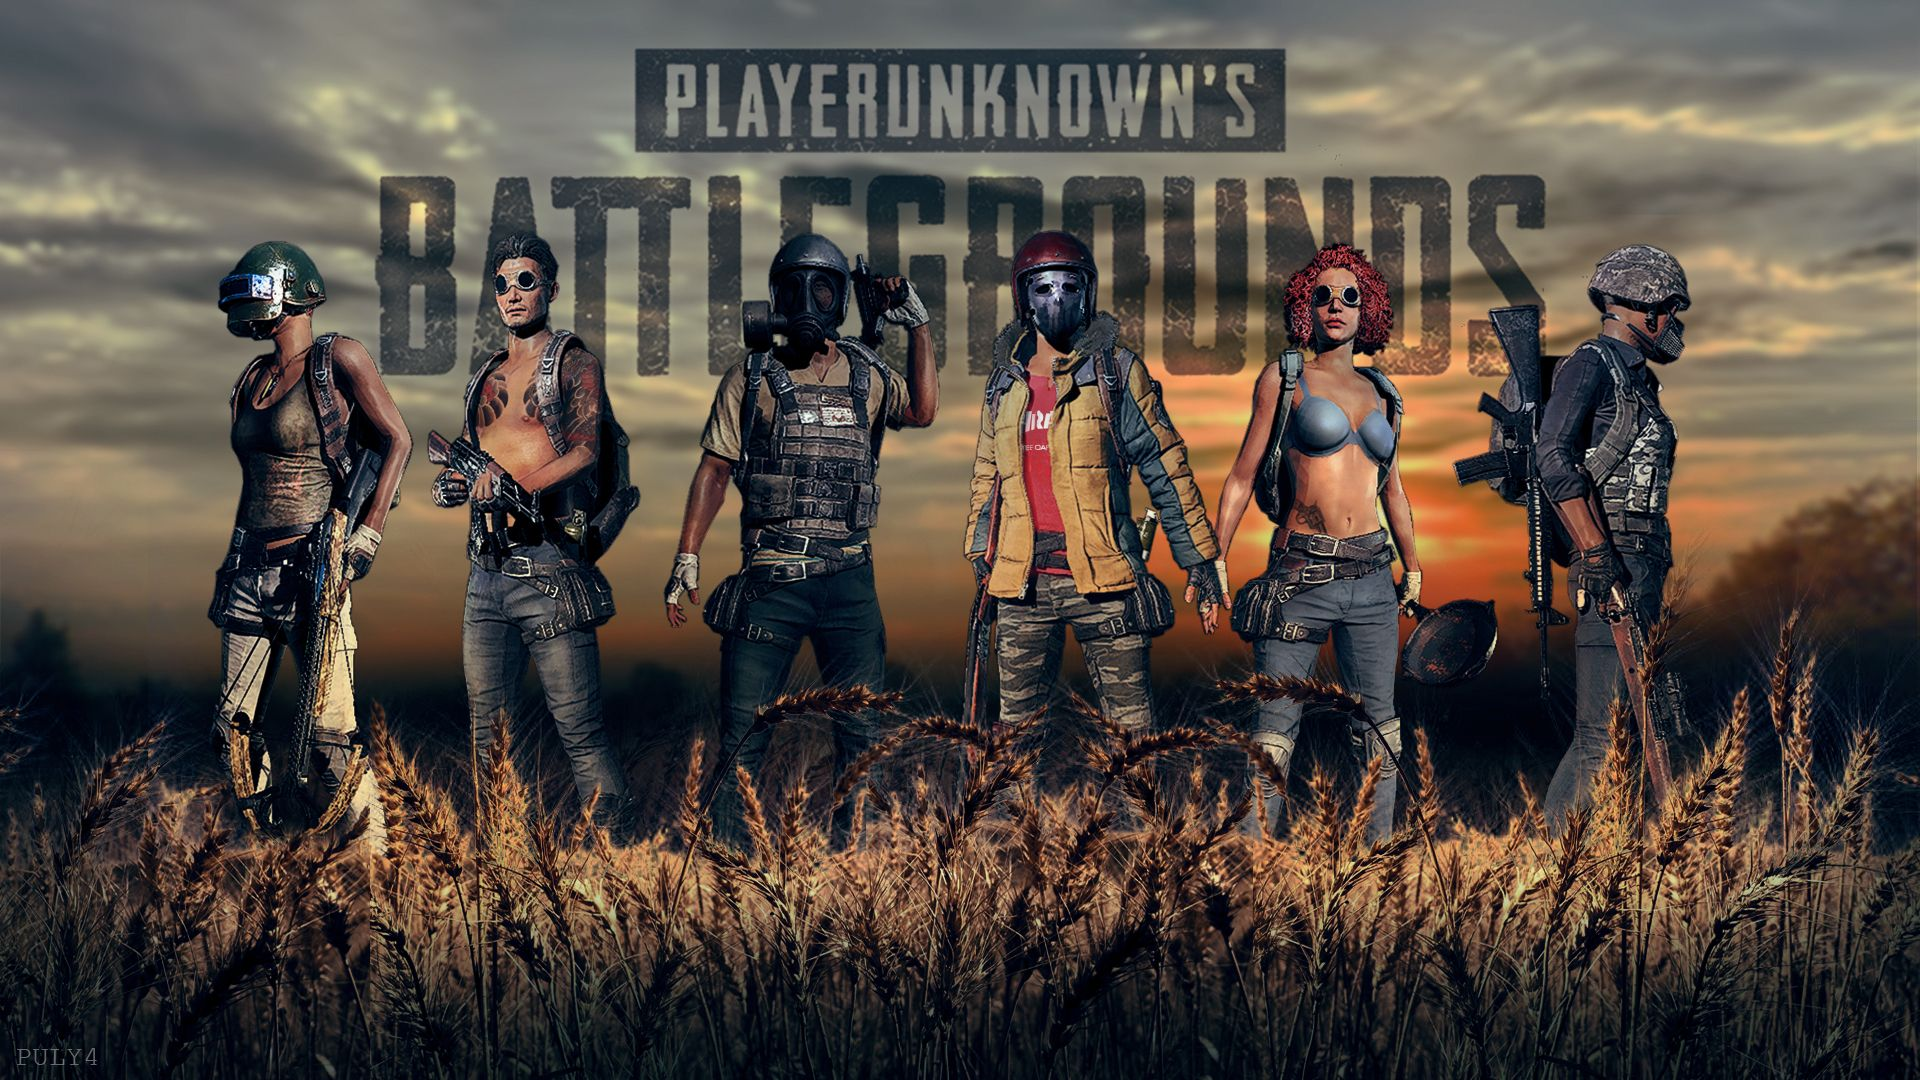 Best Pubg Wallpaper For All Device 2019   Image Diamond 1920x1080